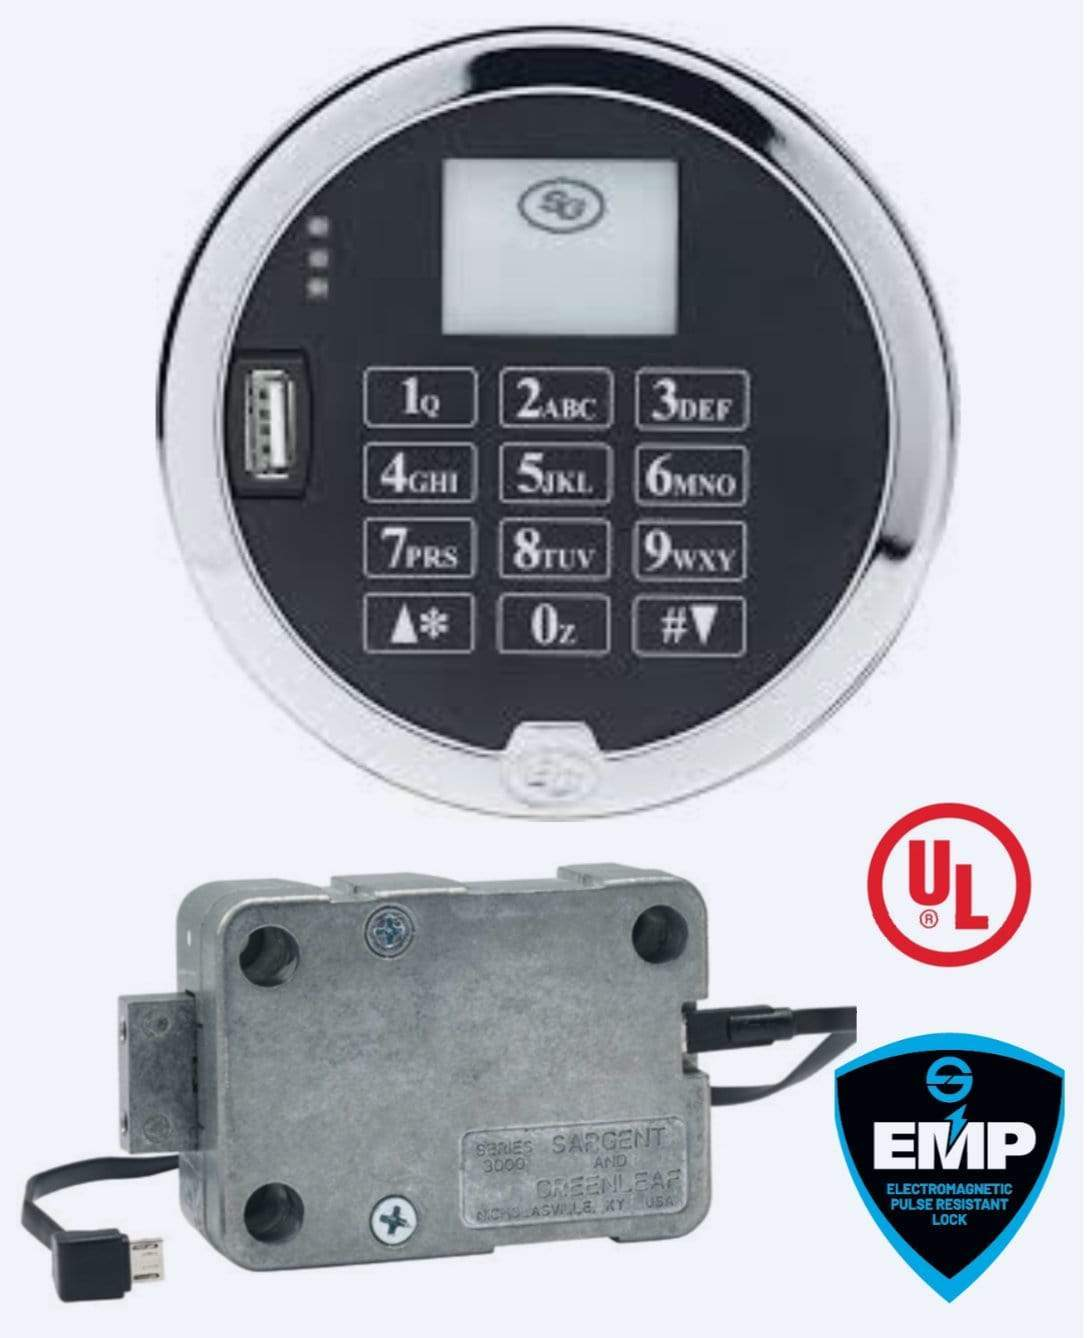 SG3029-502, Digital Time Lock, Push-Pull Design, Satin Chrome Keypad, 2-Battery